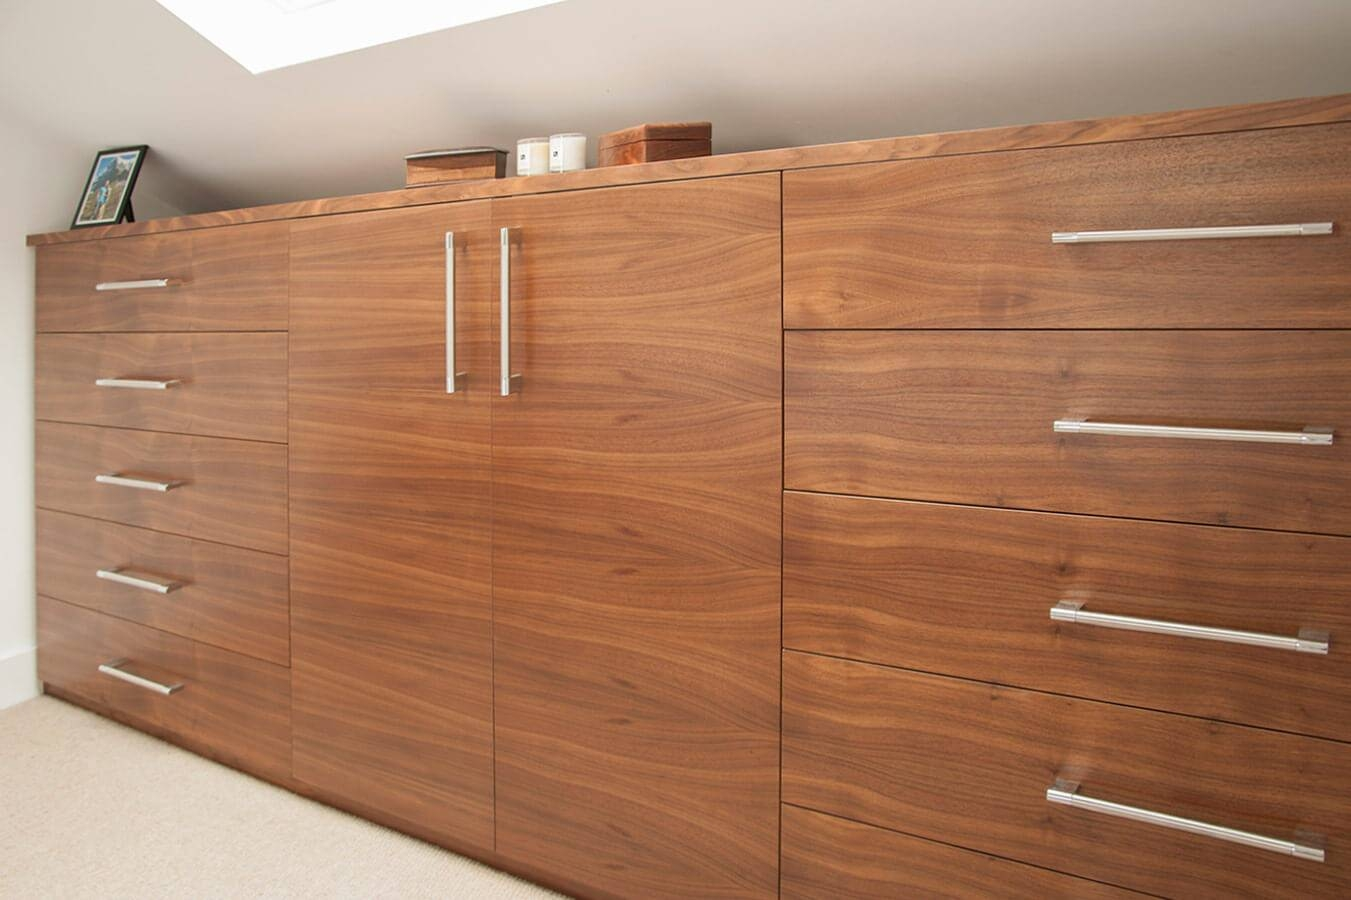 Fitted Bedrooms | Wardrobes, Beds And Chests Of Drawers Within Wardrobes And Chest Of Drawers Combined (View 2 of 15)